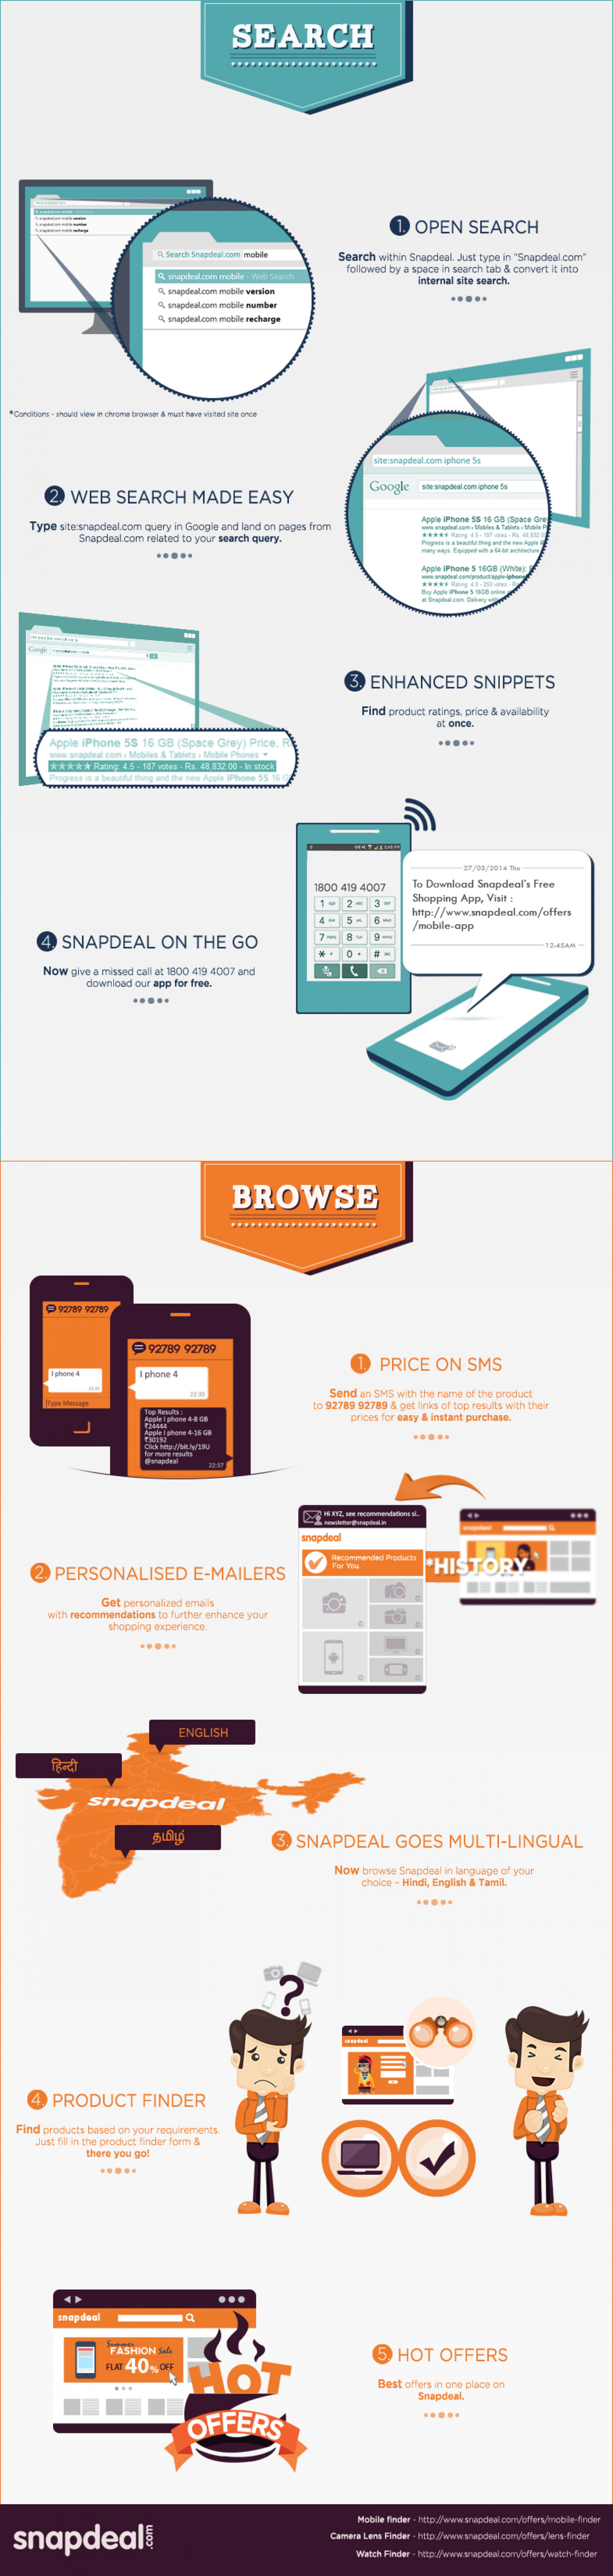 Make Snapdeal Experience Even Better!  Infographic